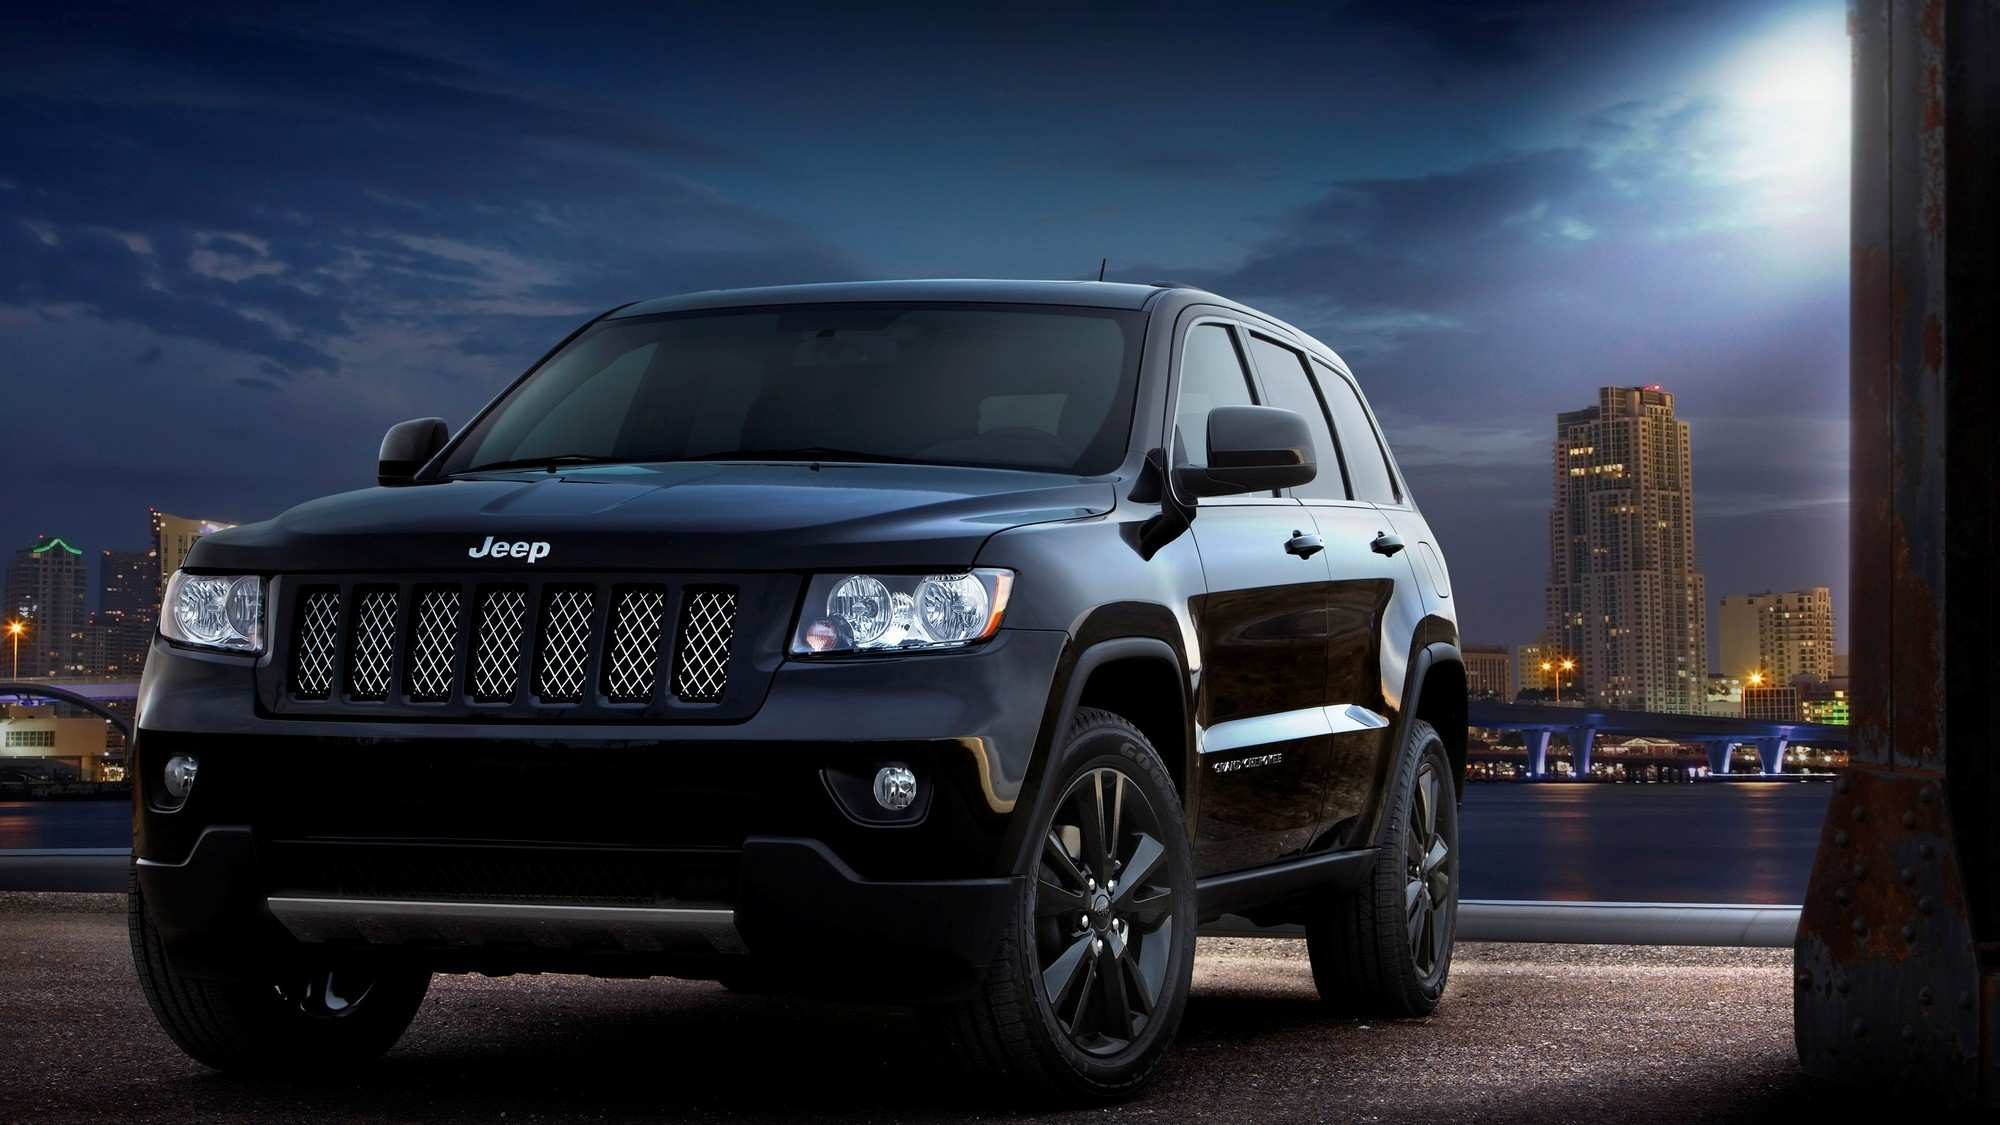 53 New Jeep High Altitude 2019 Concept Images